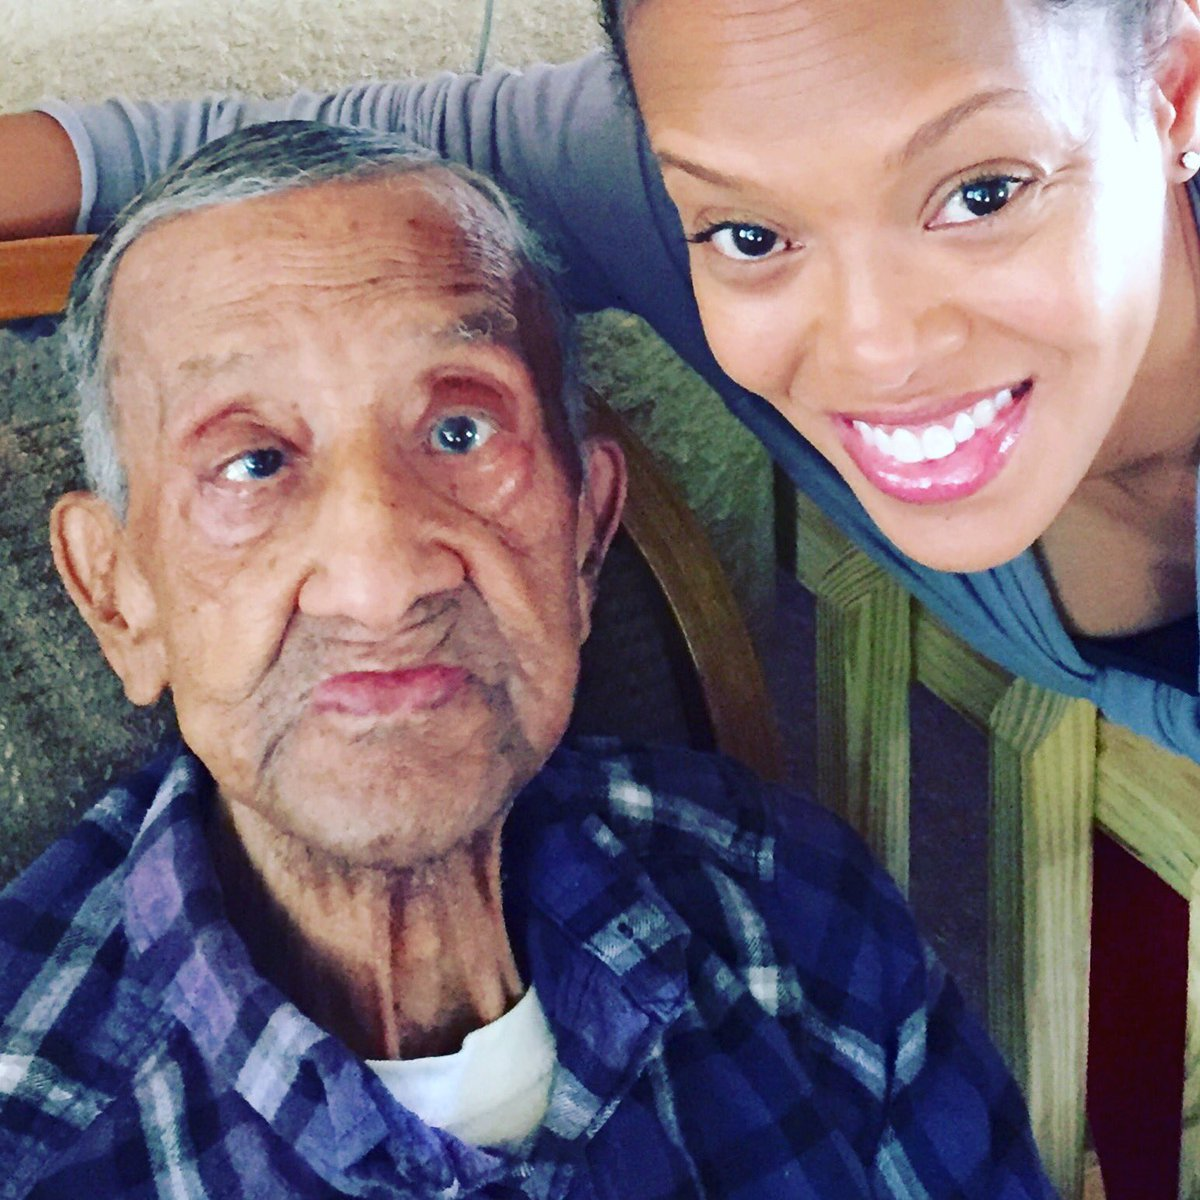 My handsome #grandfather wants you all to know that he will be 106 years old on August 6, 2016! #centenarian https://t.co/NN2NcJu7xn